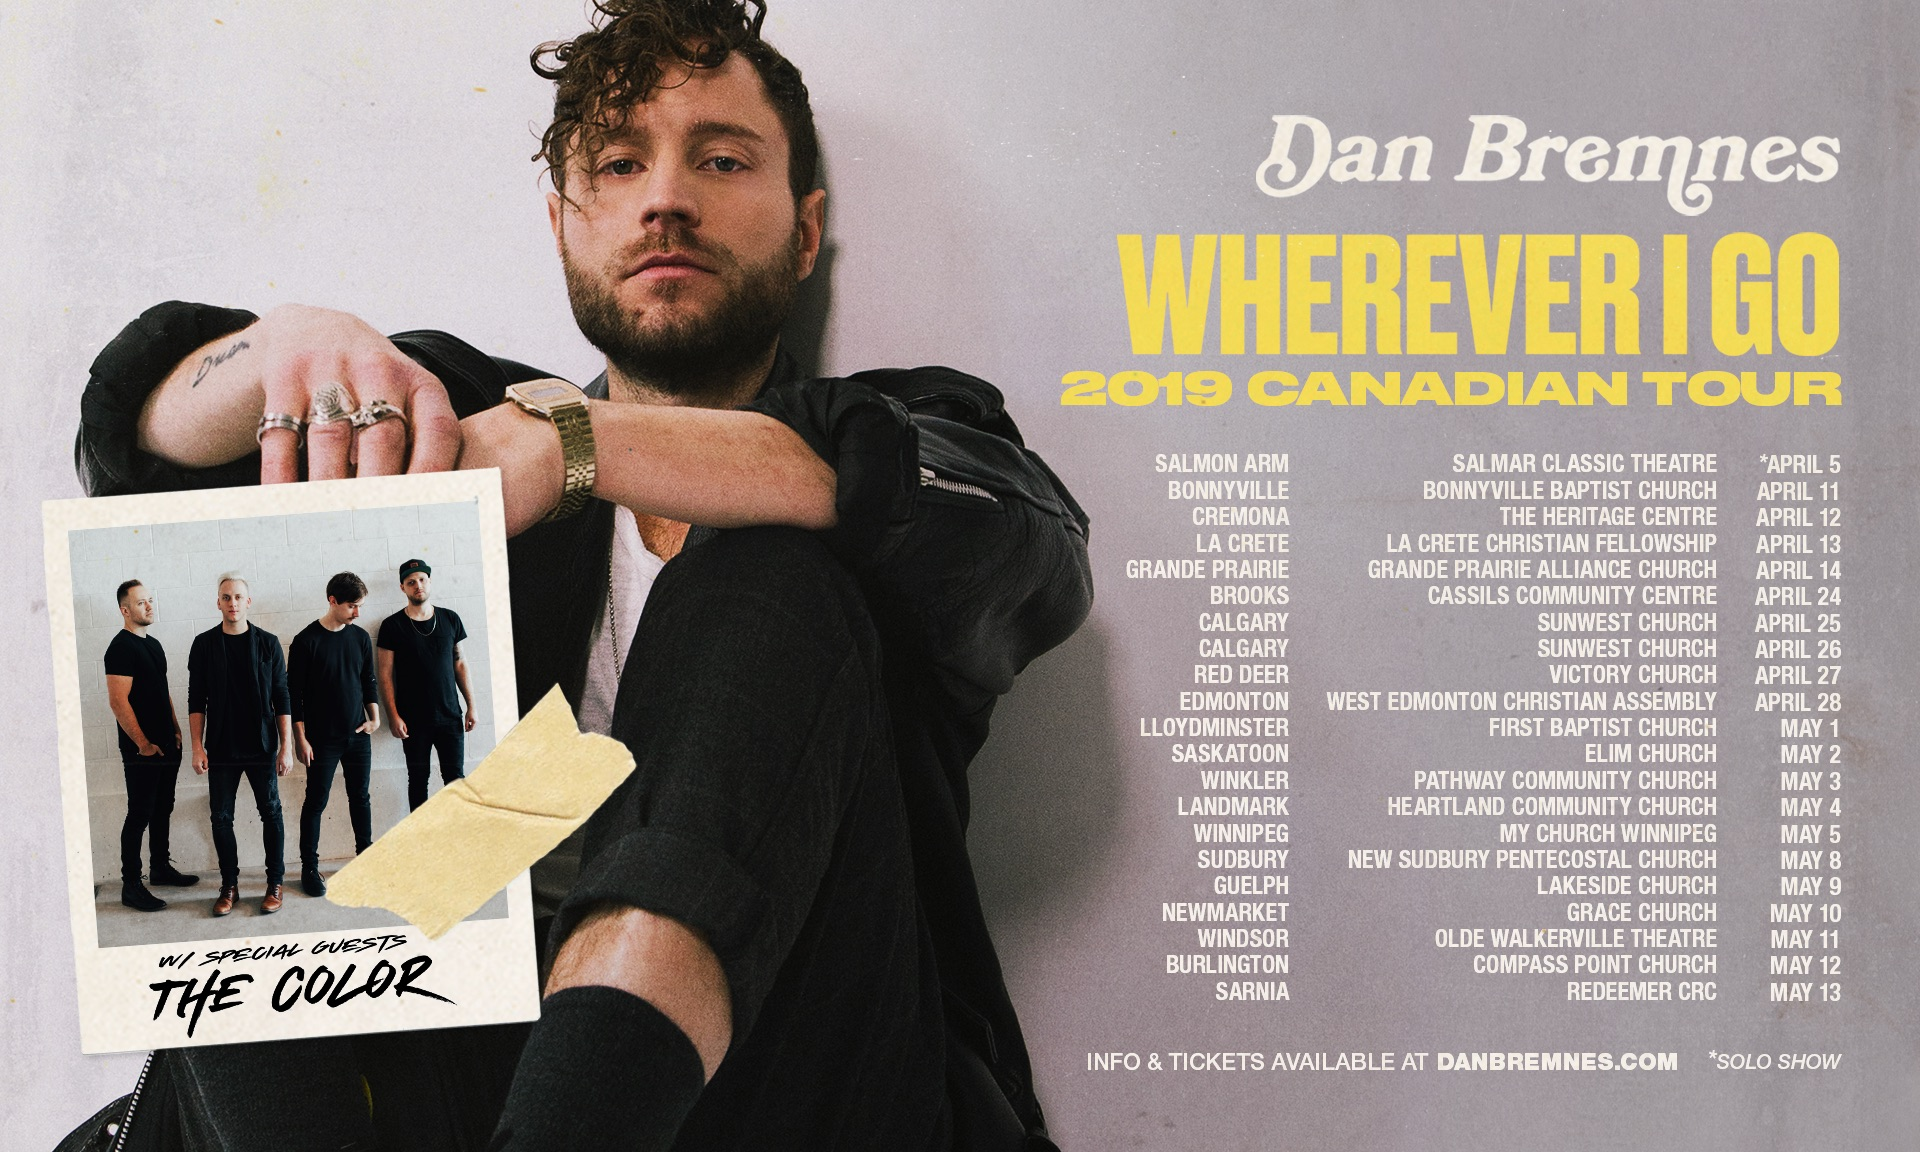 Tickets for Dan Bremnes, Wherever I Go Tour with The Color in Cremona from BuzzTix